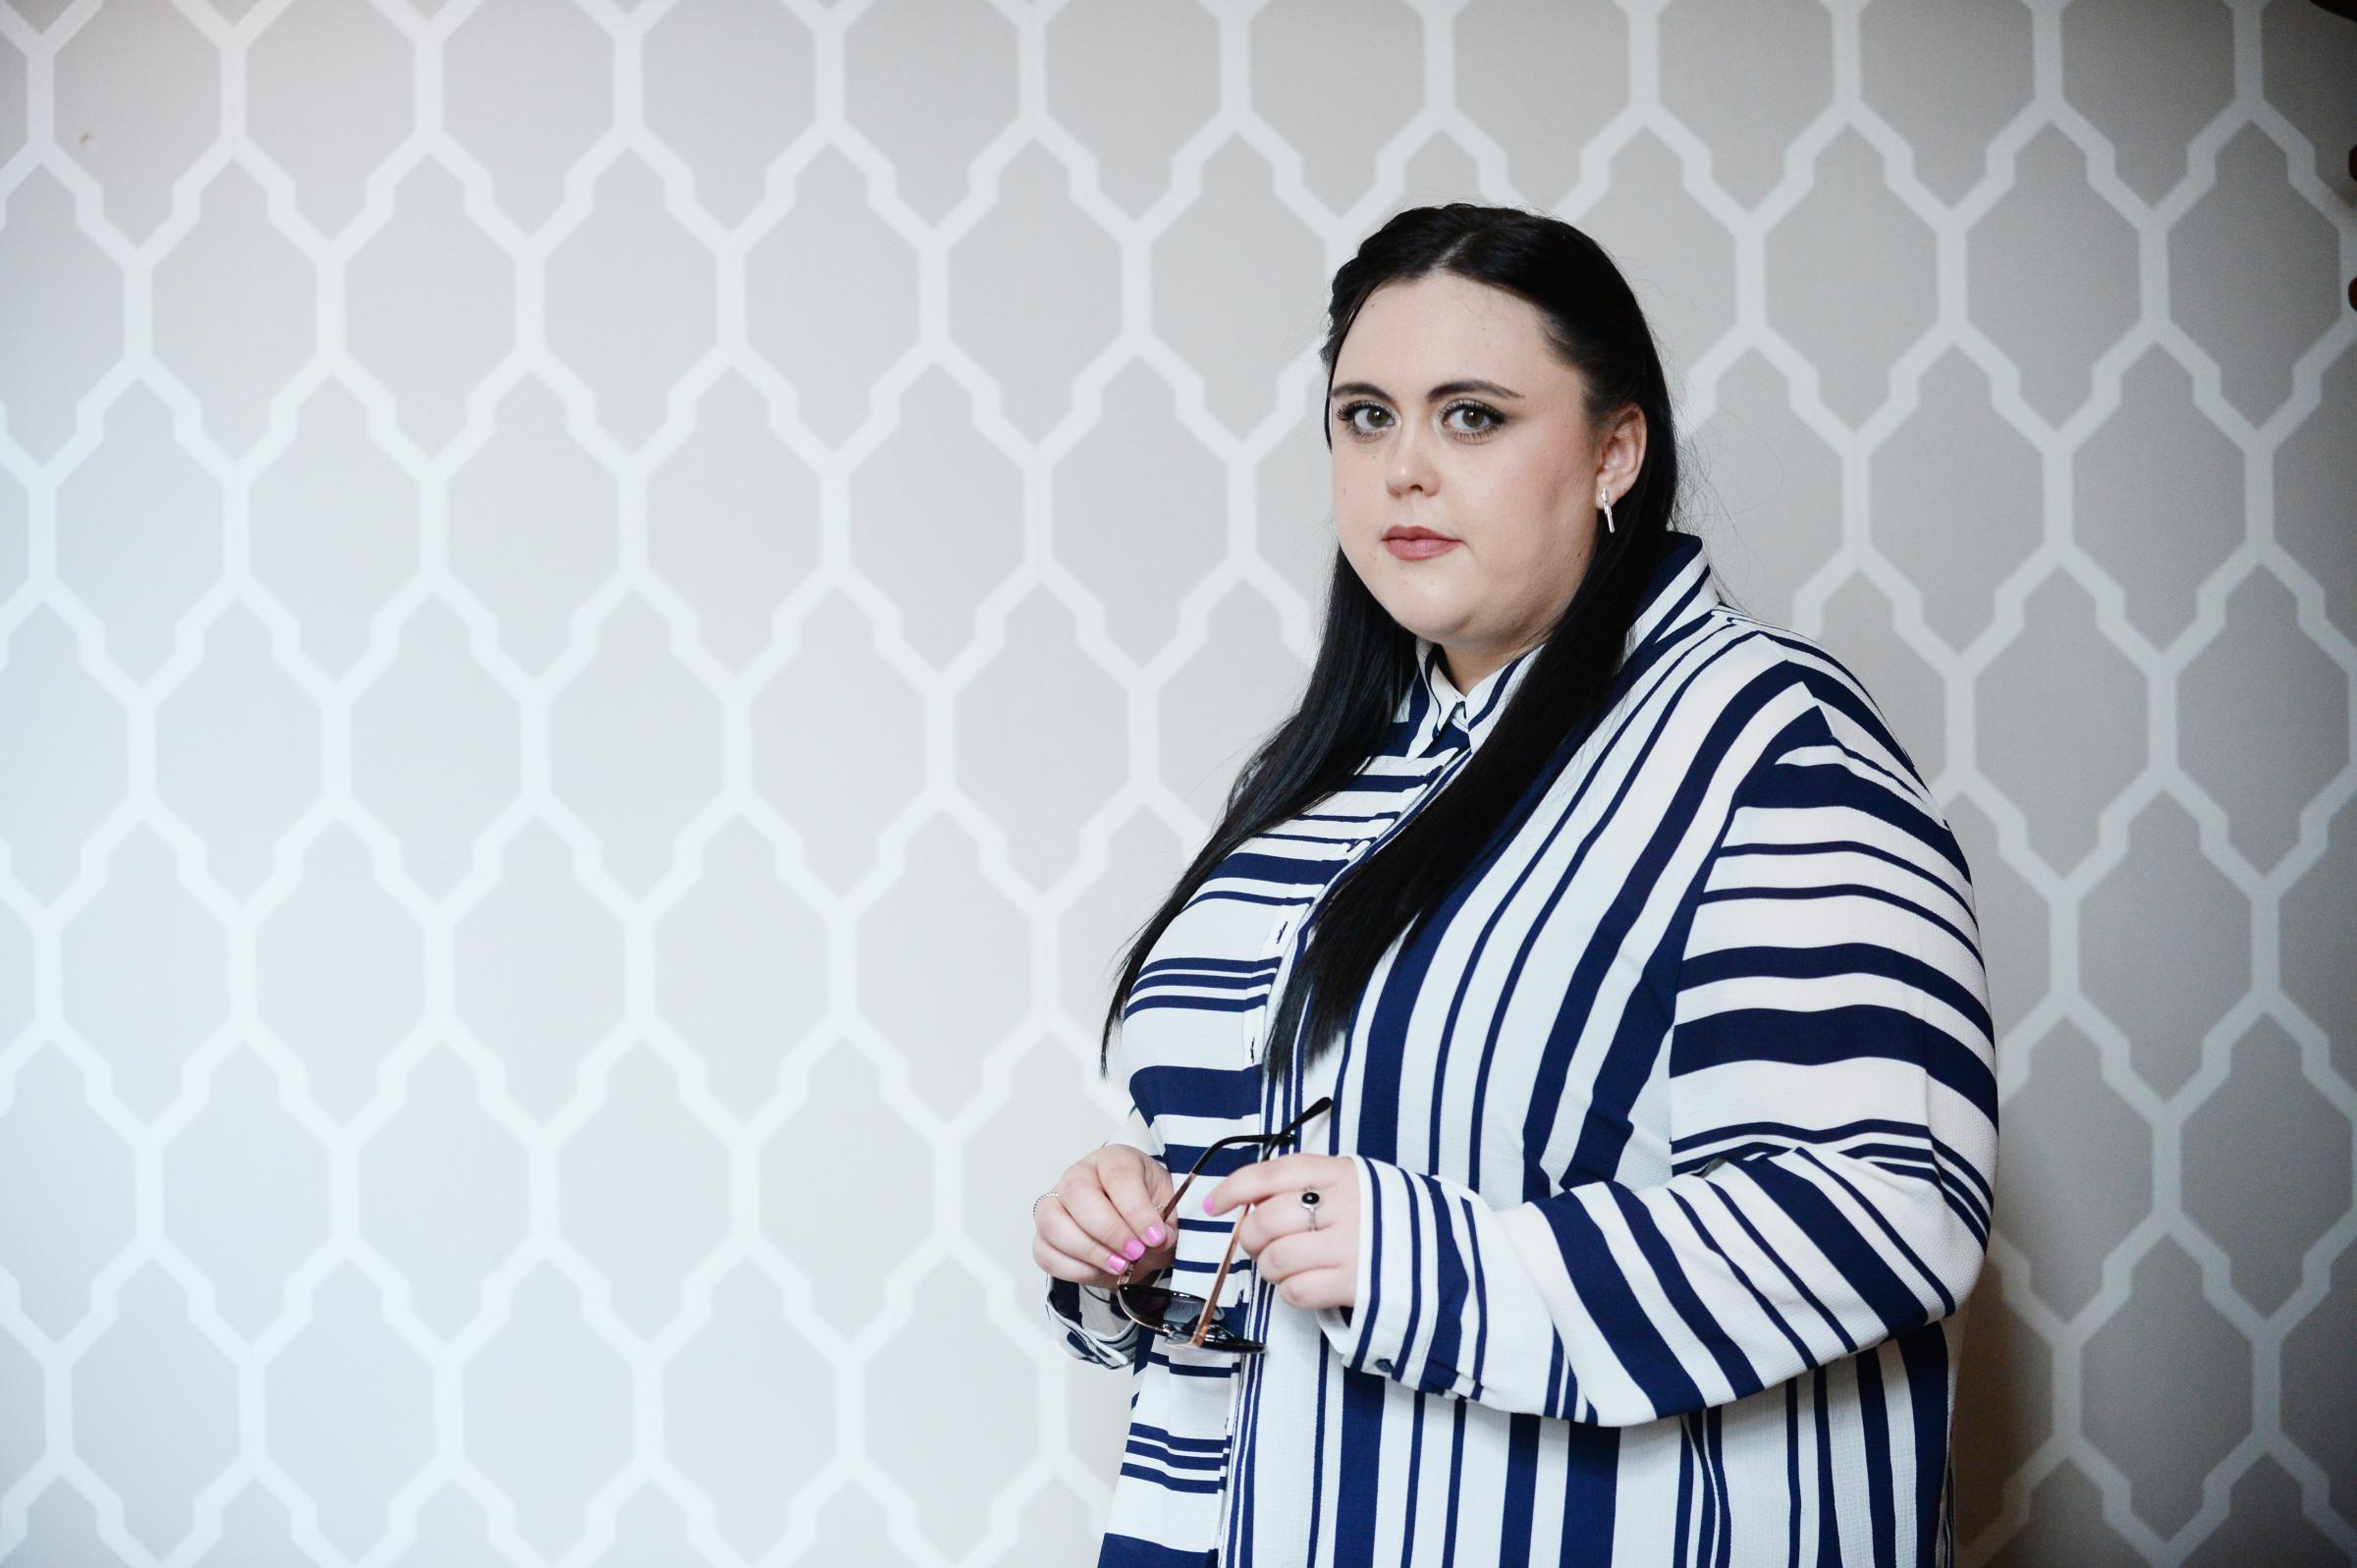 Sharon Rooney nudes (79 foto and video), Pussy, Sideboobs, Selfie, lingerie 2019